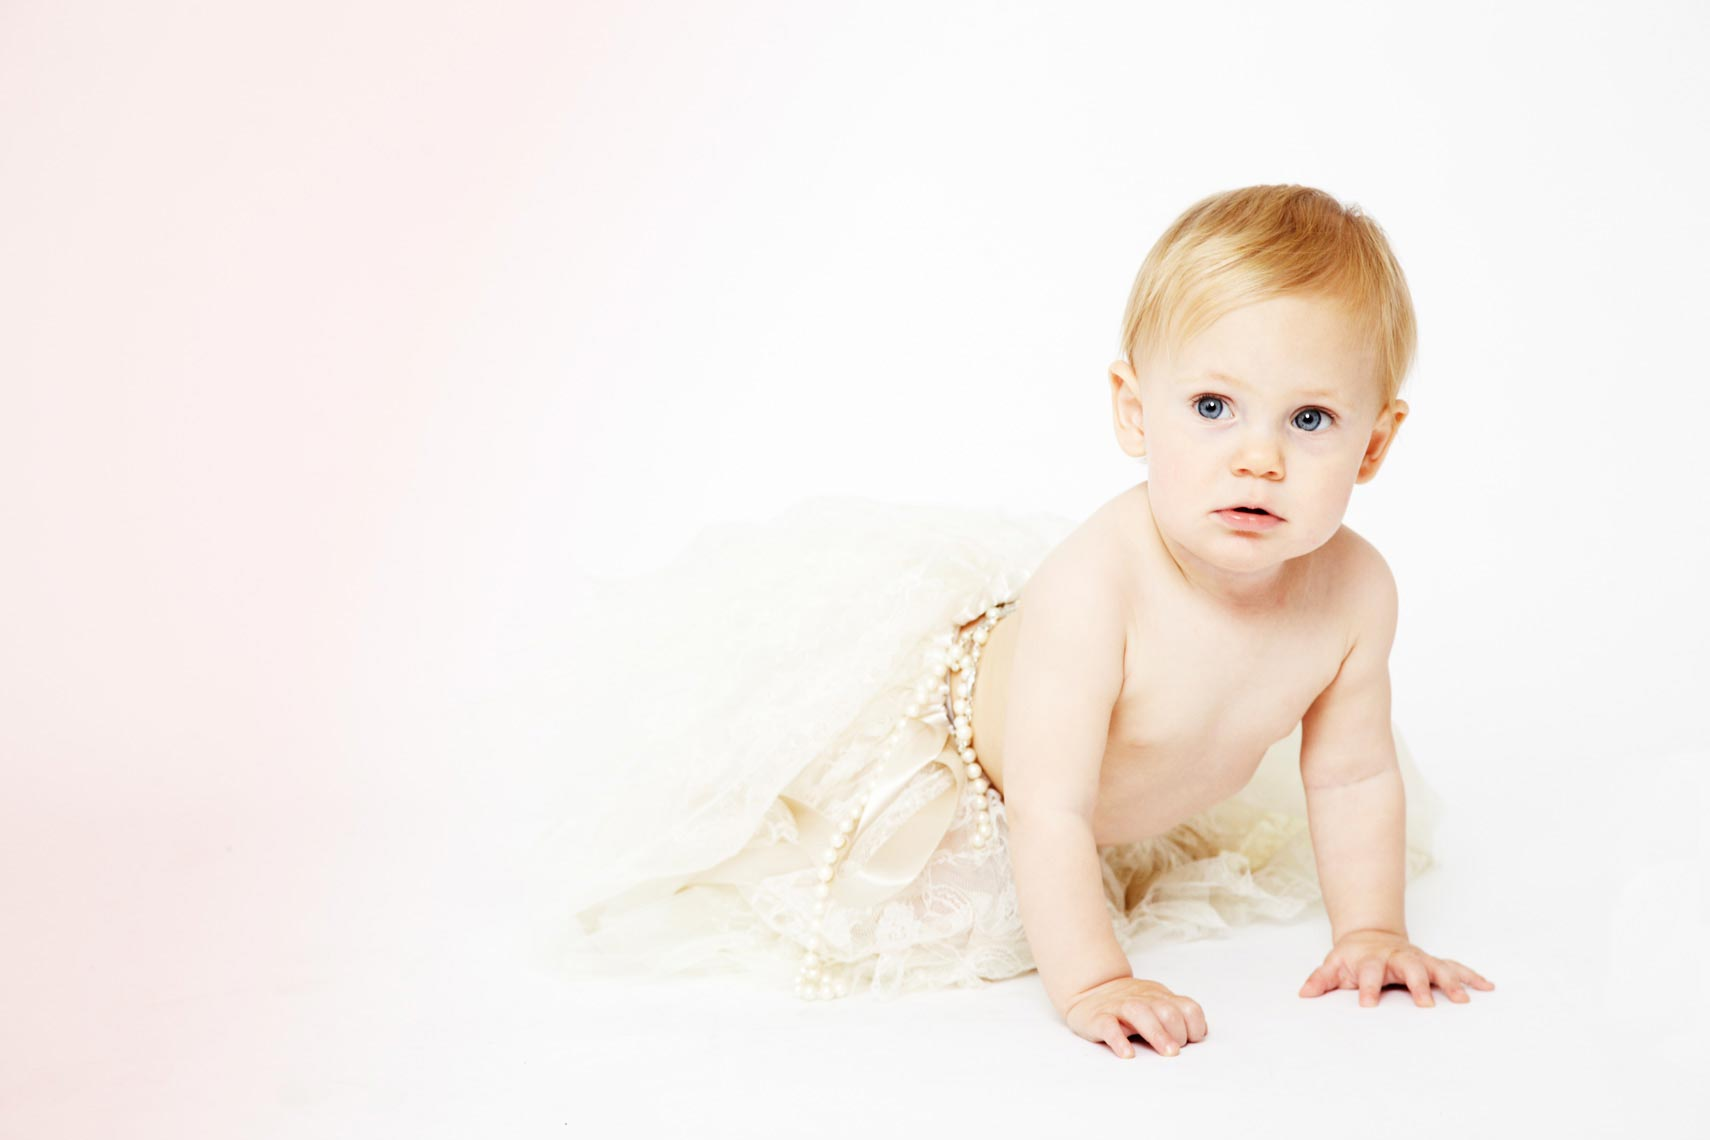 14-Sara_Pine_Kids_Photography_Studio_Advertising246